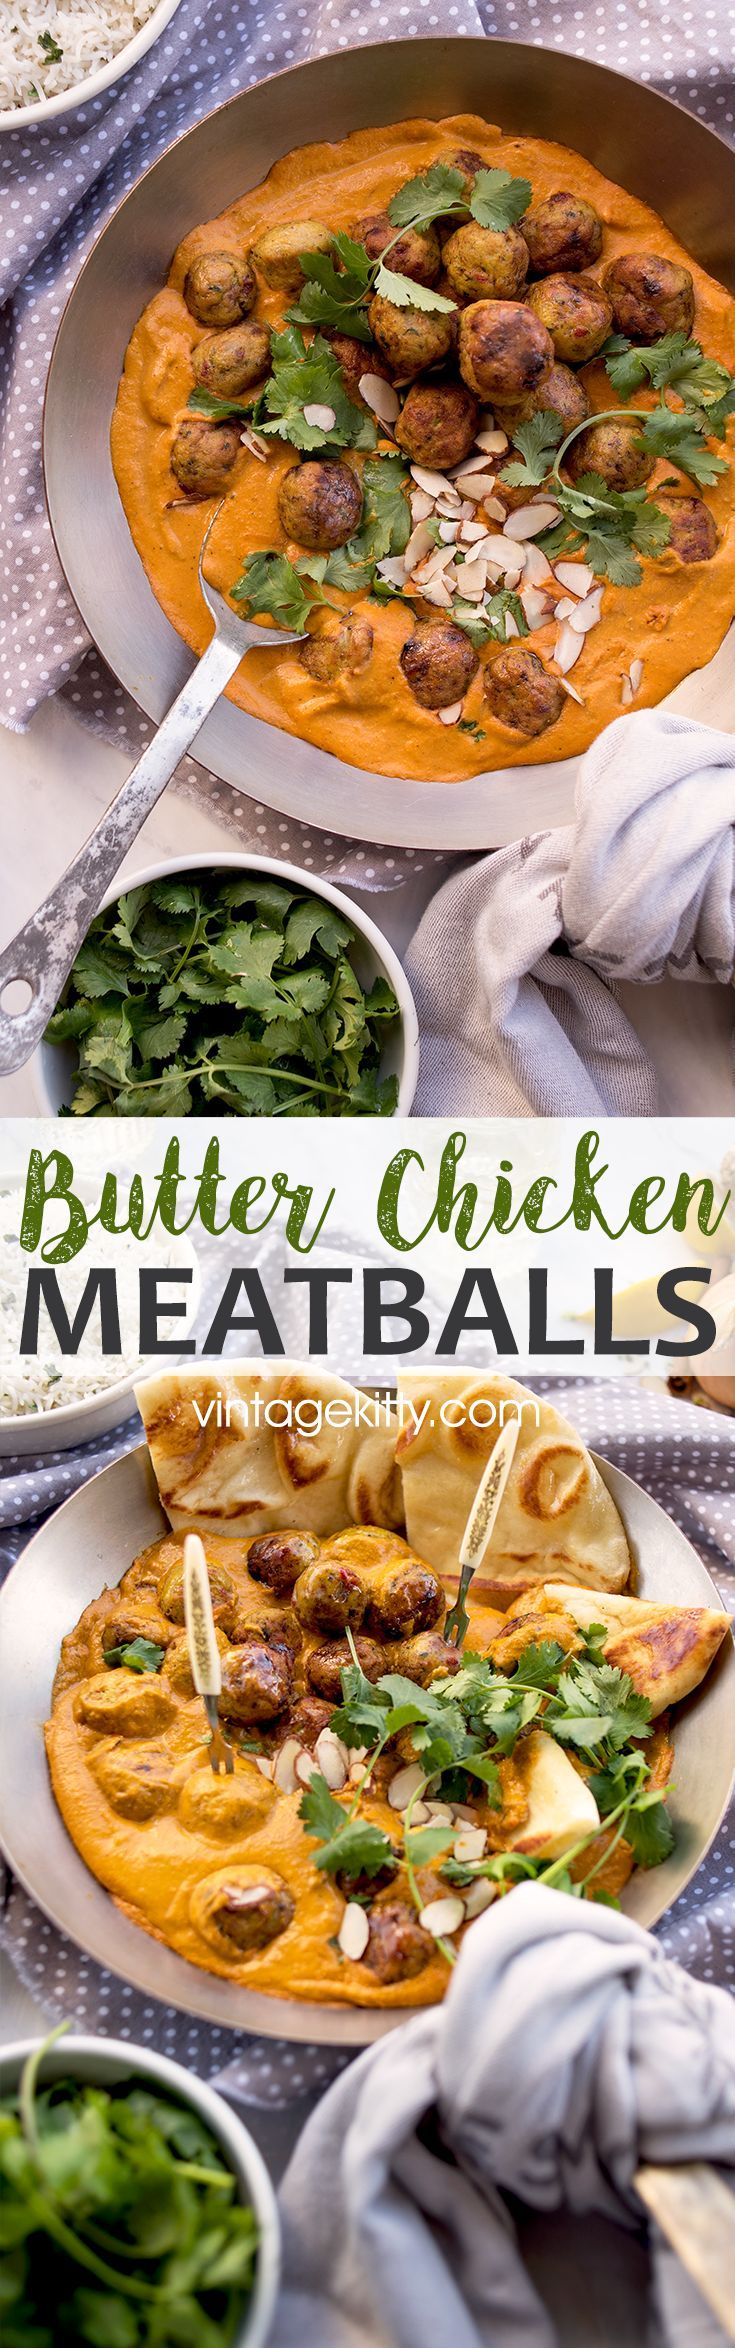 This recipe remake is a fun and delicious dish for sharing! Our Butter Chicken Meatballs are a great party appetizer or main course. It's creamy sauce will have you mopping up every last drop with buttery naan!